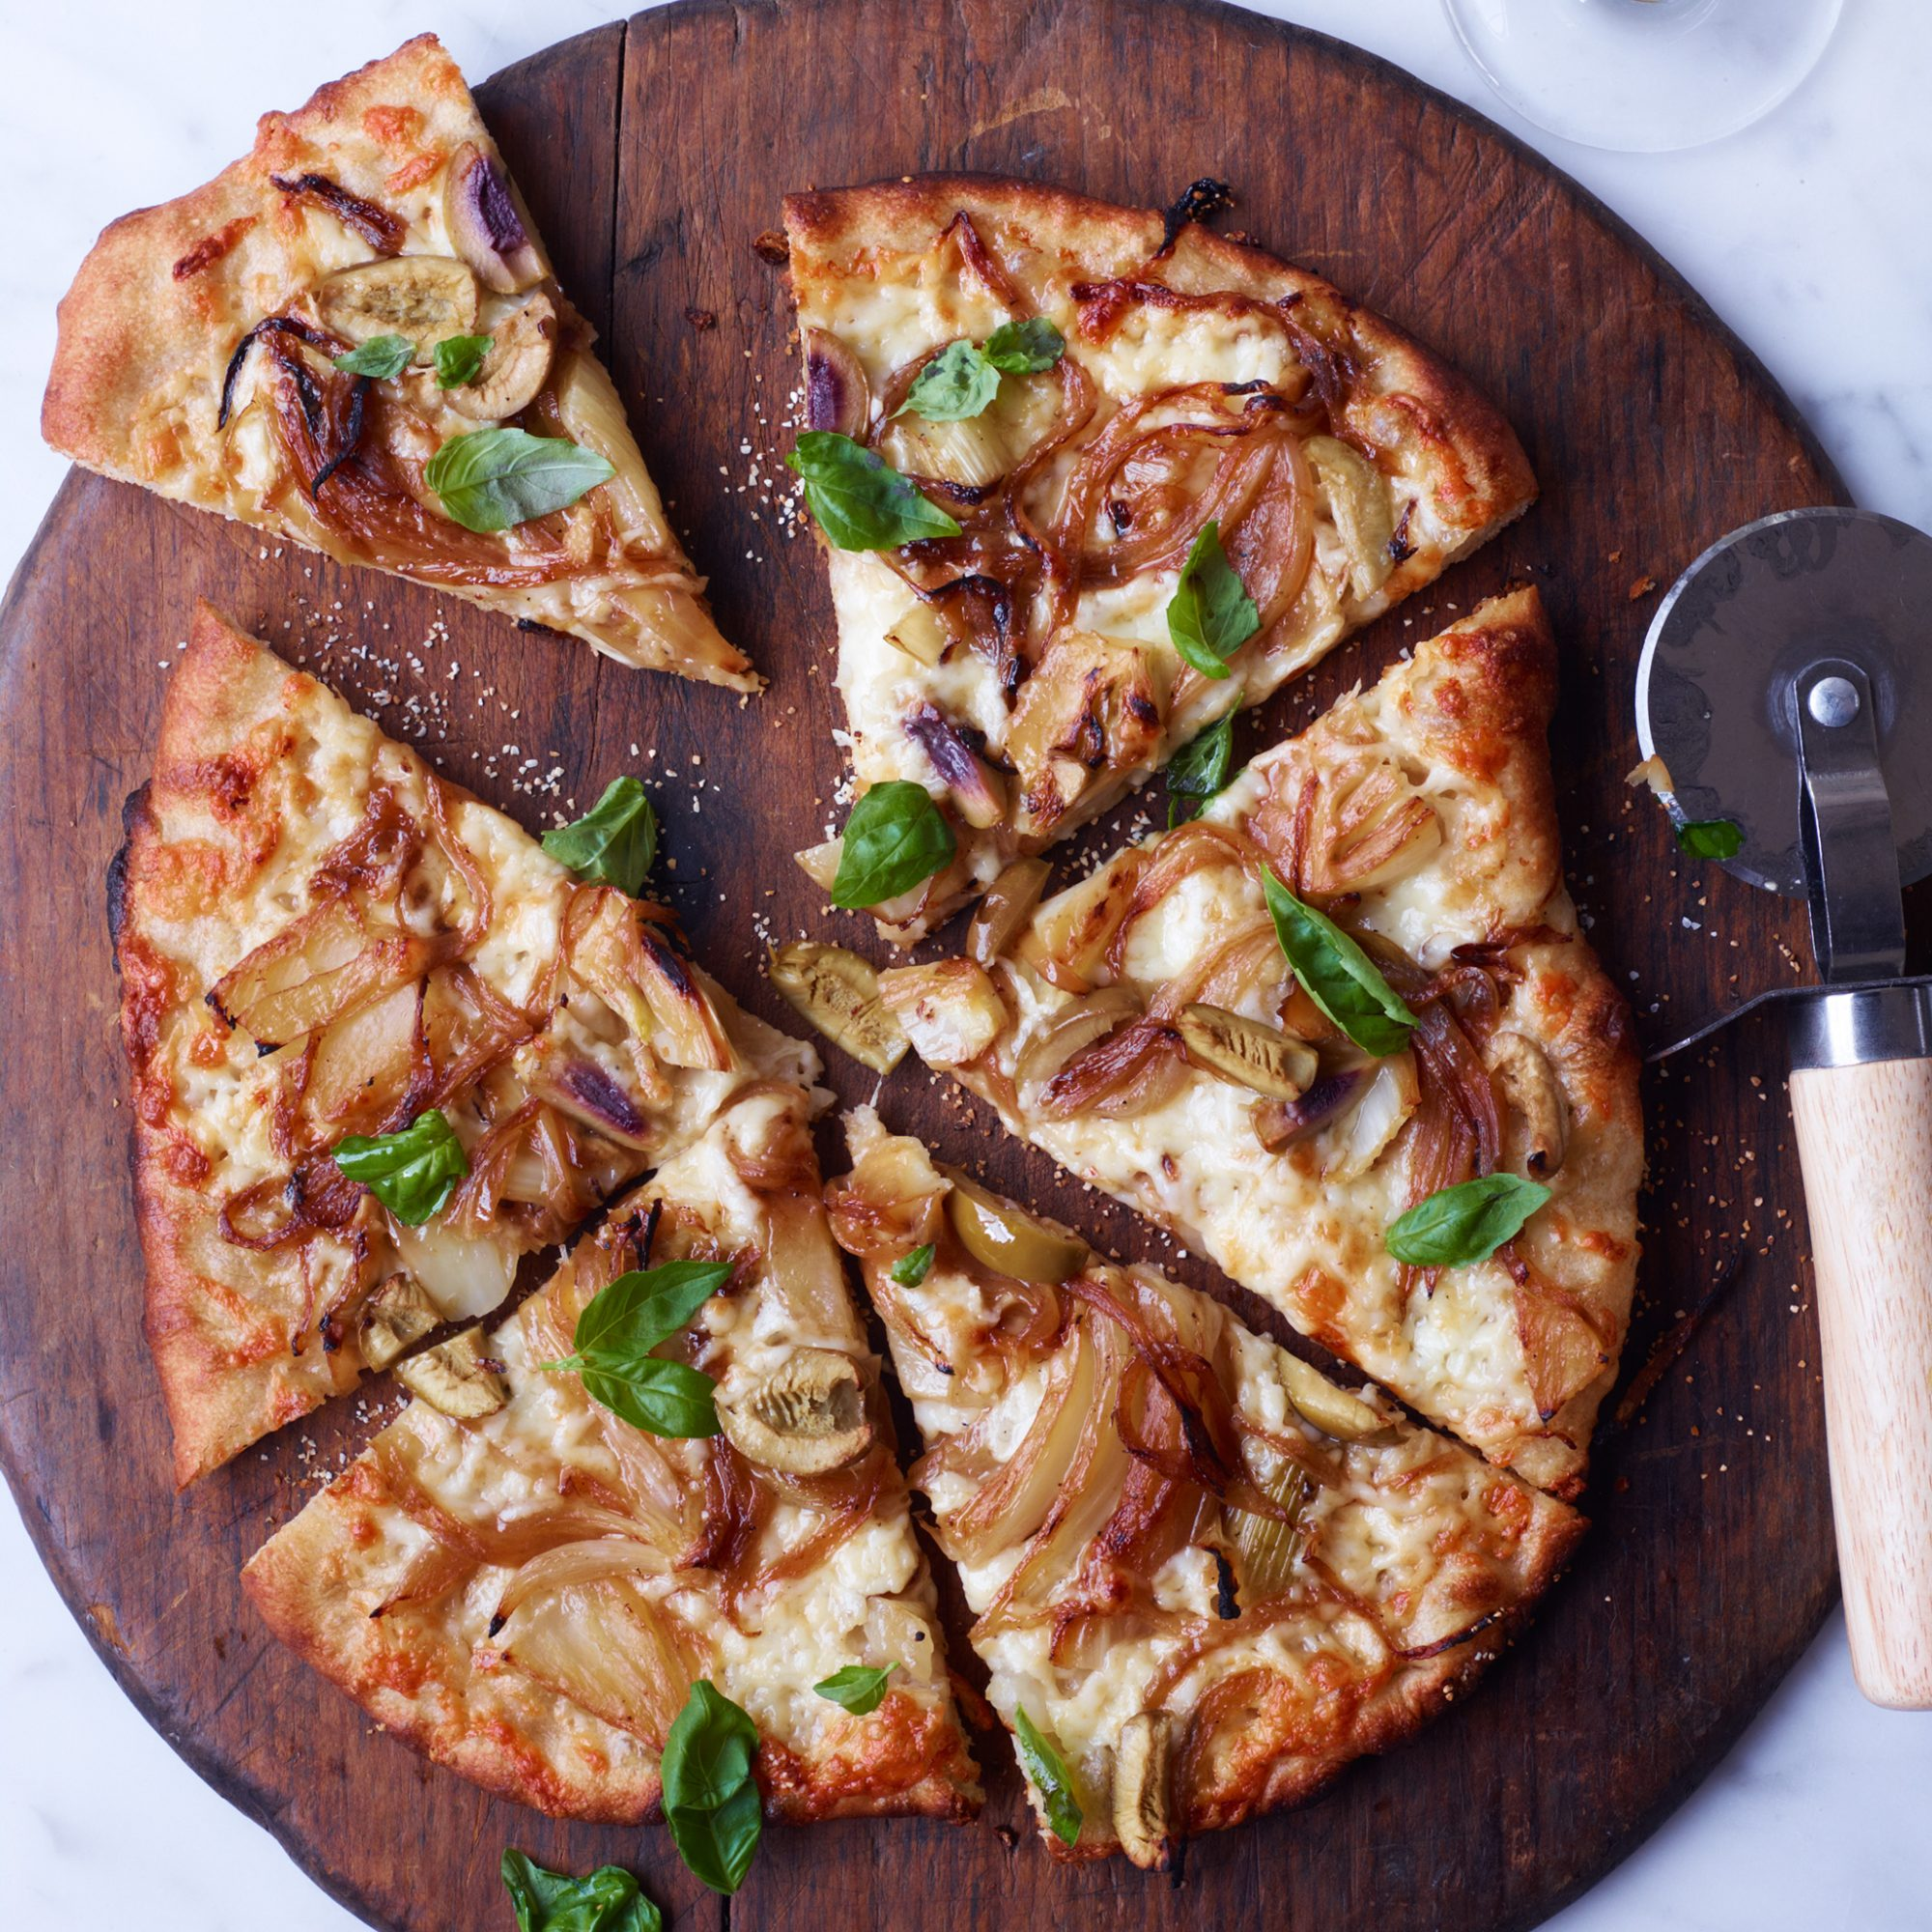 200x250-201207-r-fennel-and-sweet-onion-pizza-with-green-olives.jpg